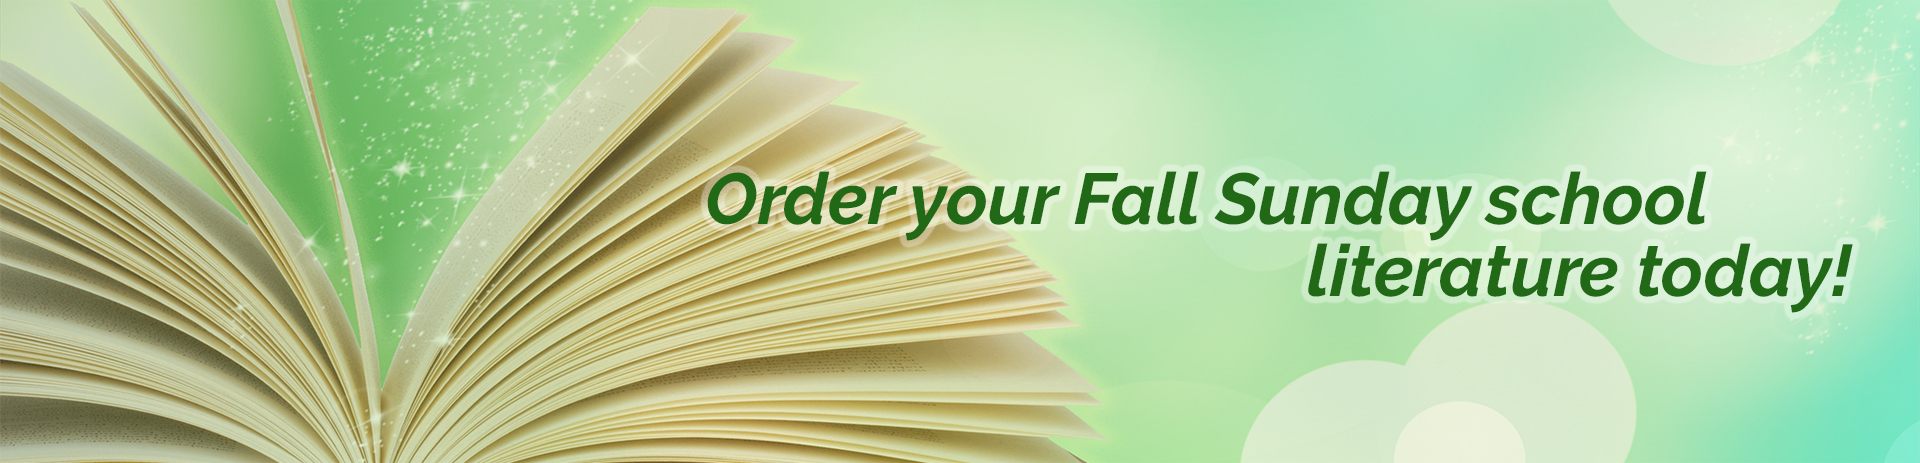 Order your summer Sunday school literature today!